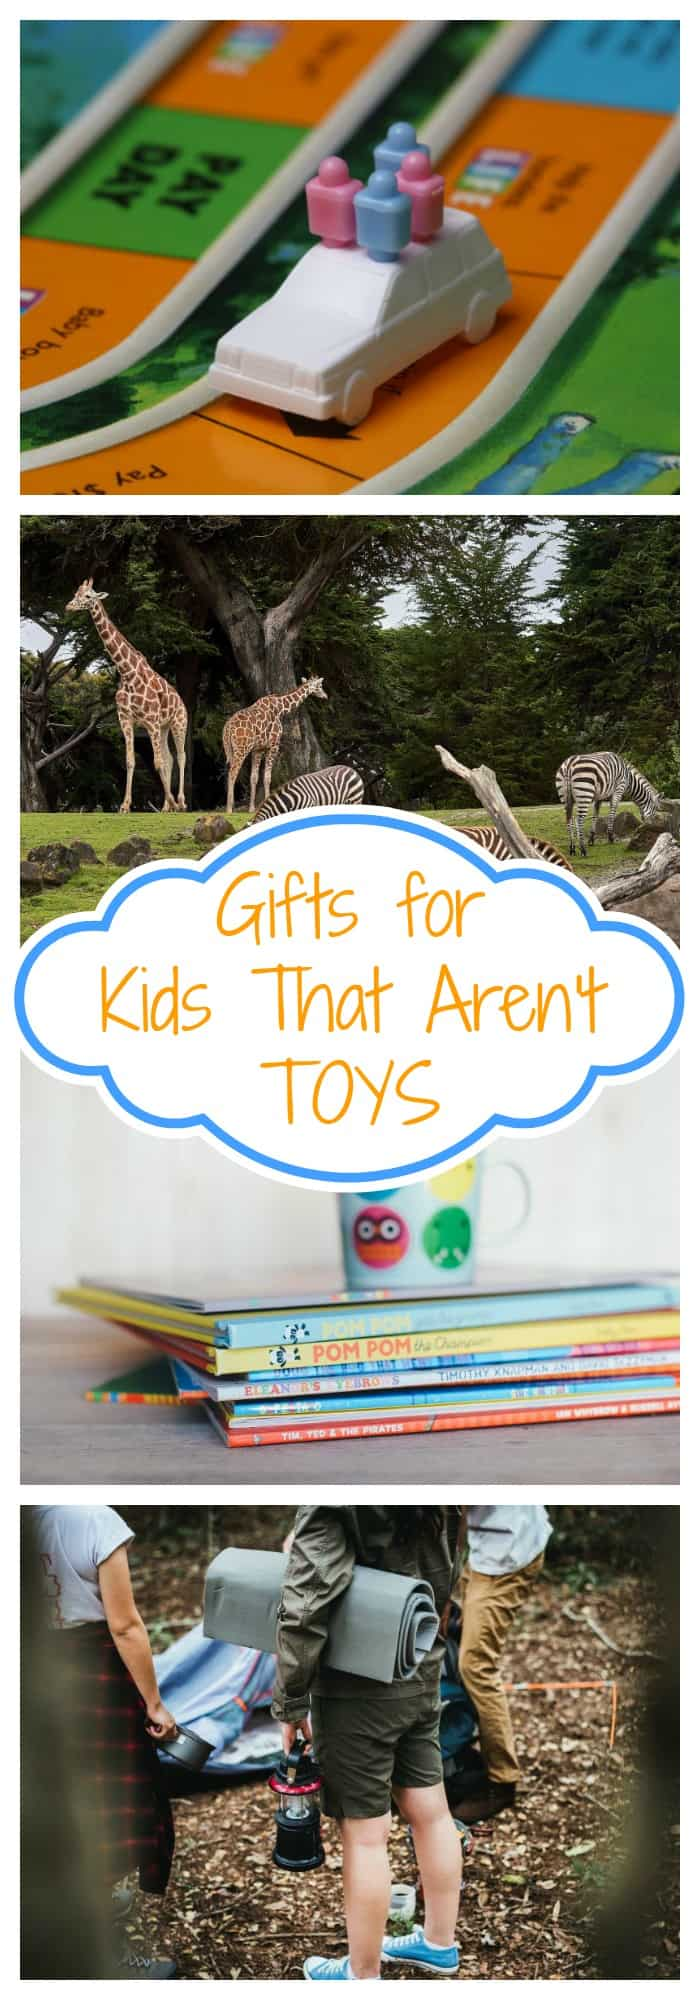 Gifts for Kids That Aren't TOYS